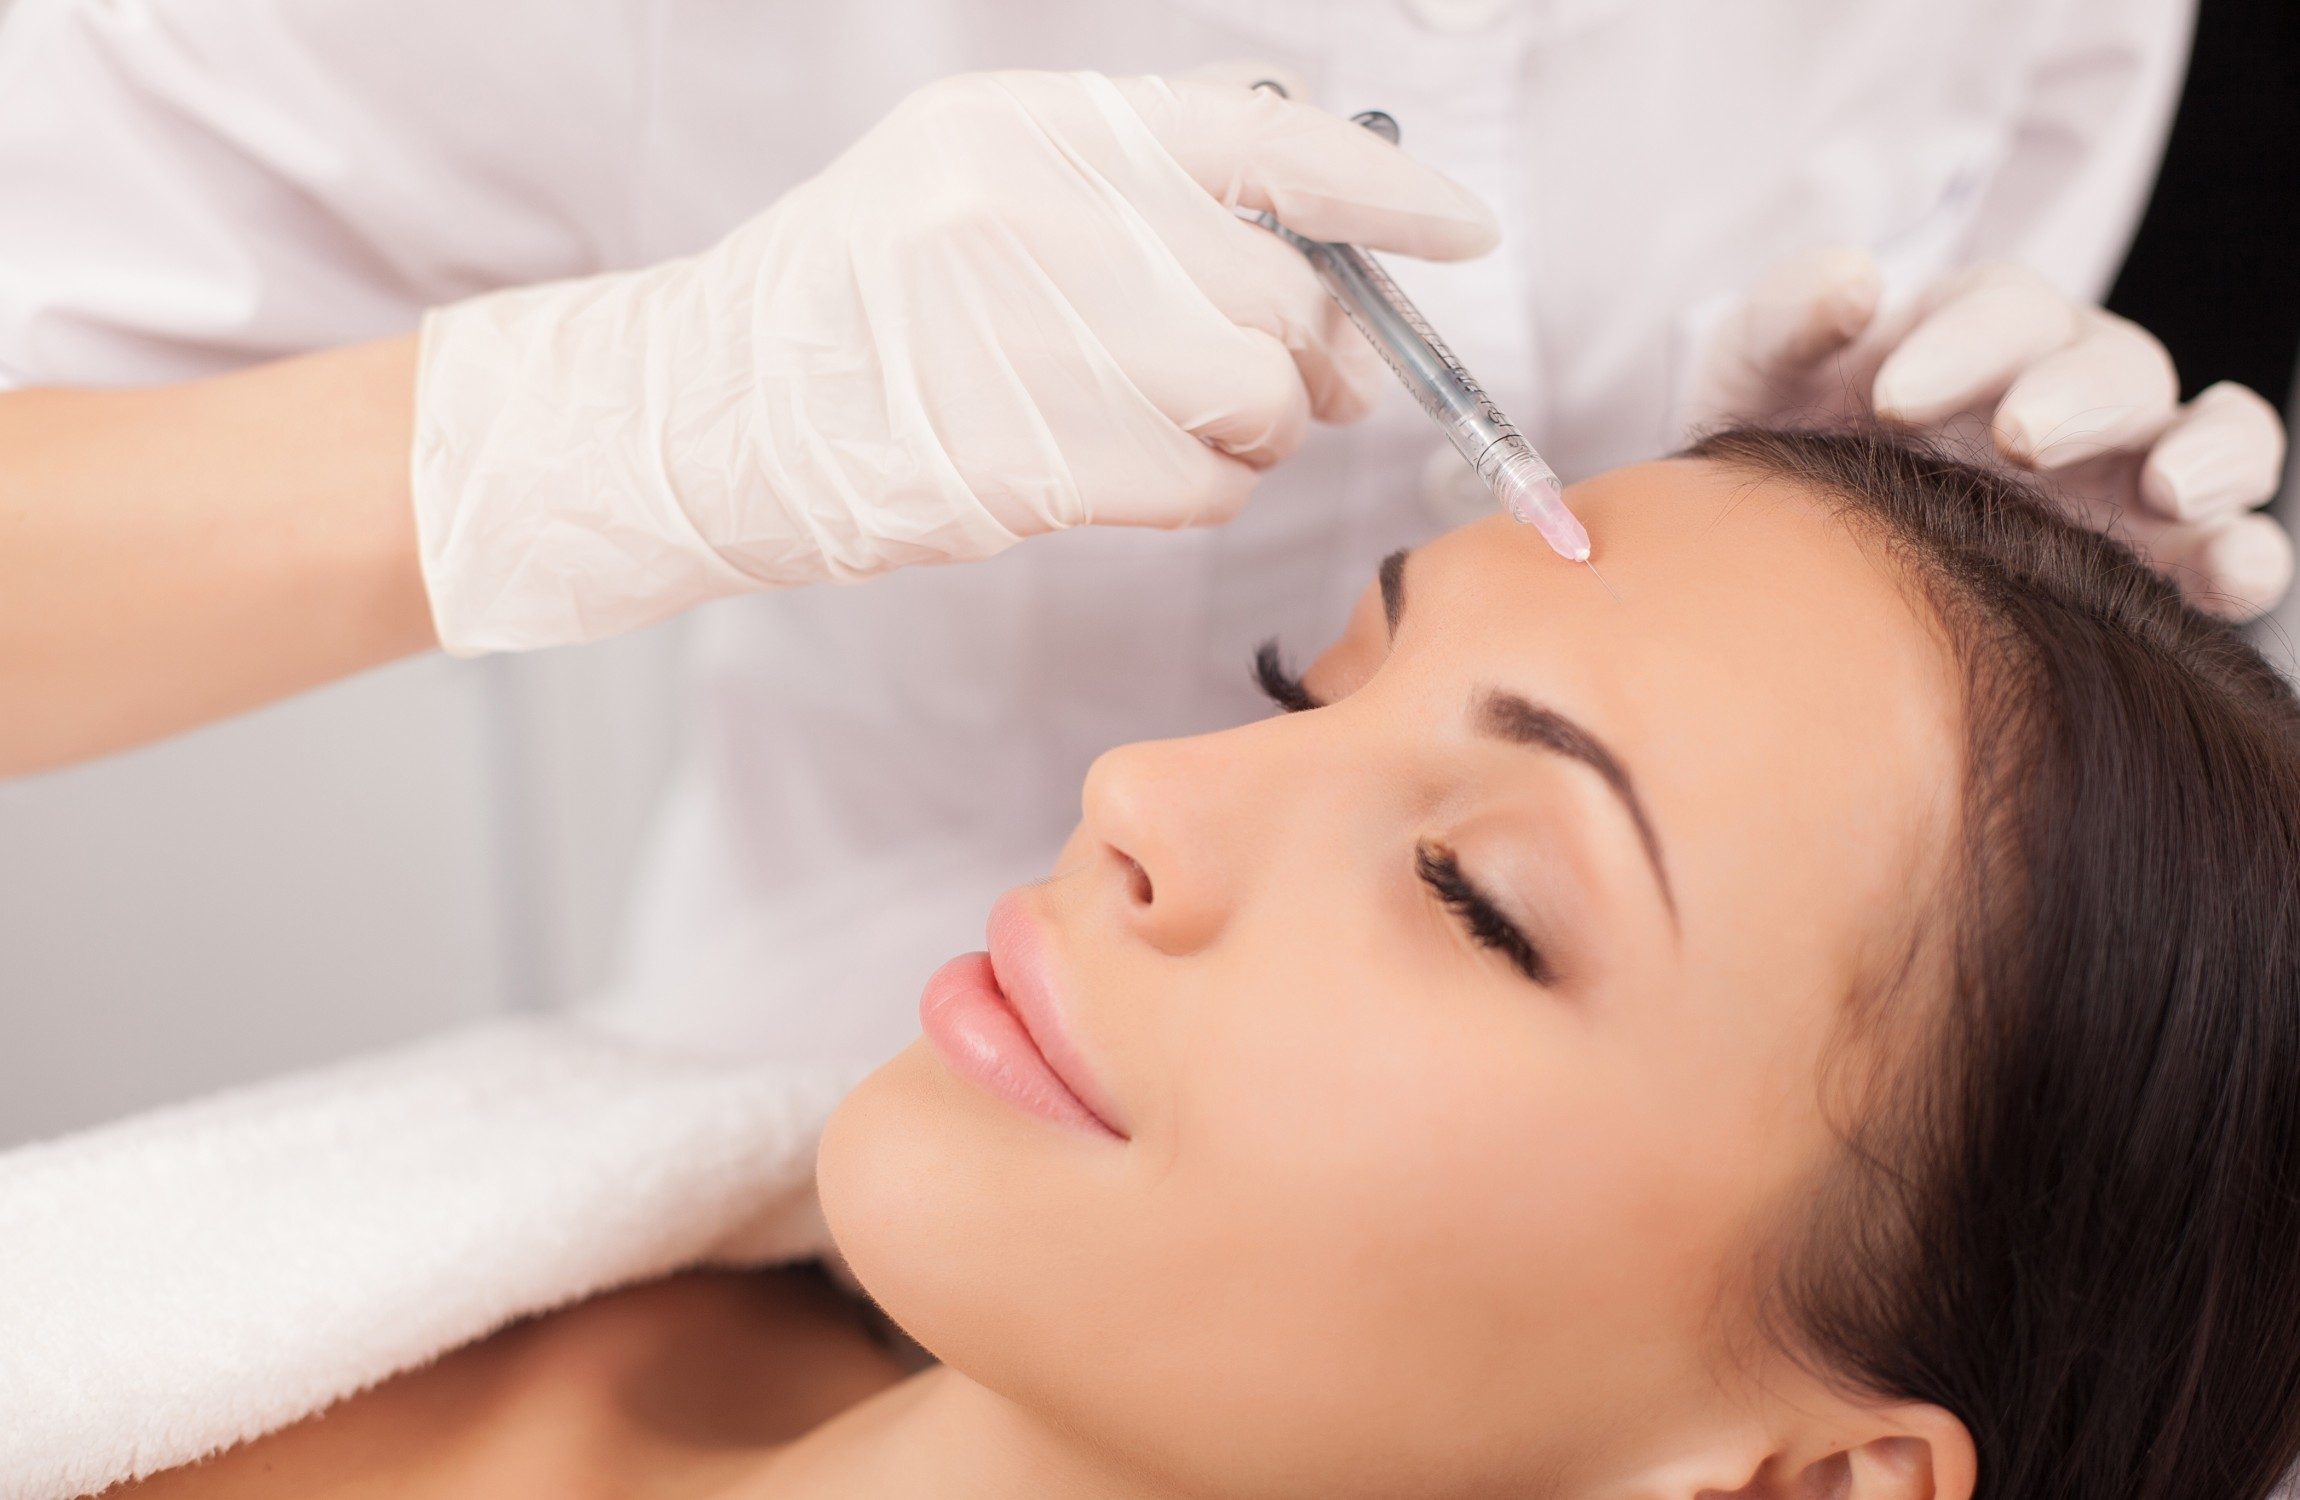 Forum on this topic: Botox Could Make You a Poor Judge , botox-could-make-you-a-poor-judge/